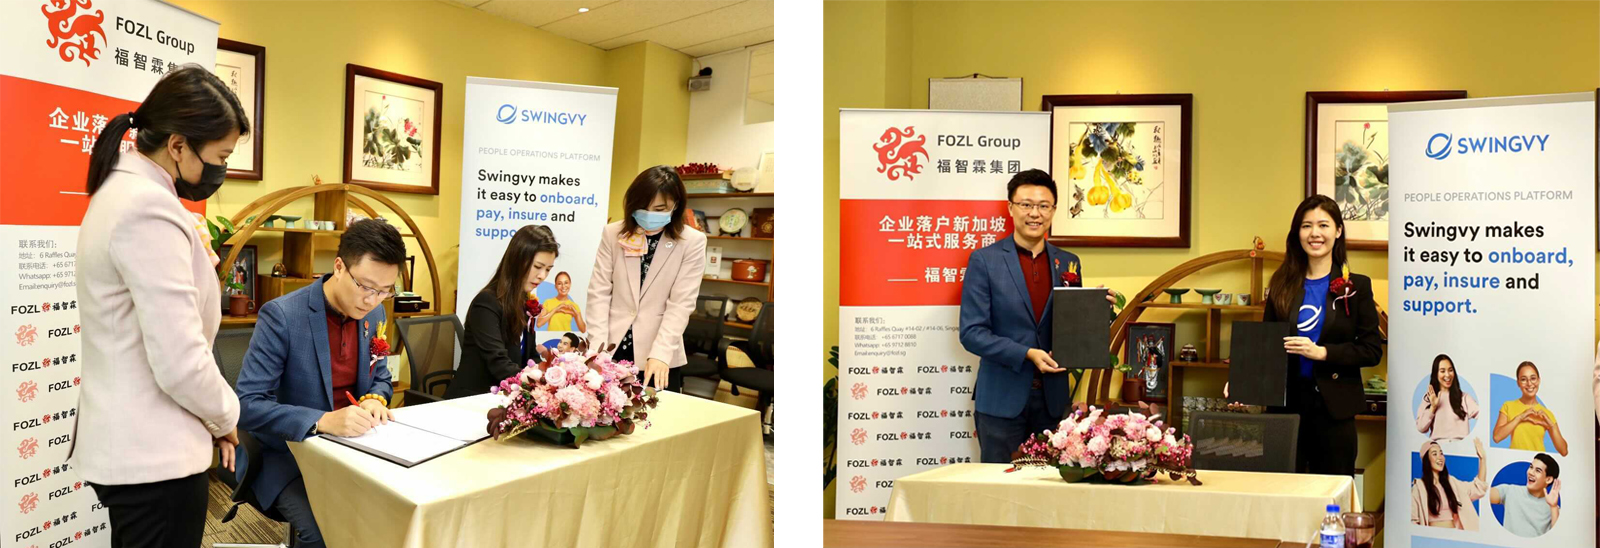 Huang Zelin and Charisse Lee sign the partnership agreement on behalf of their respective companies.